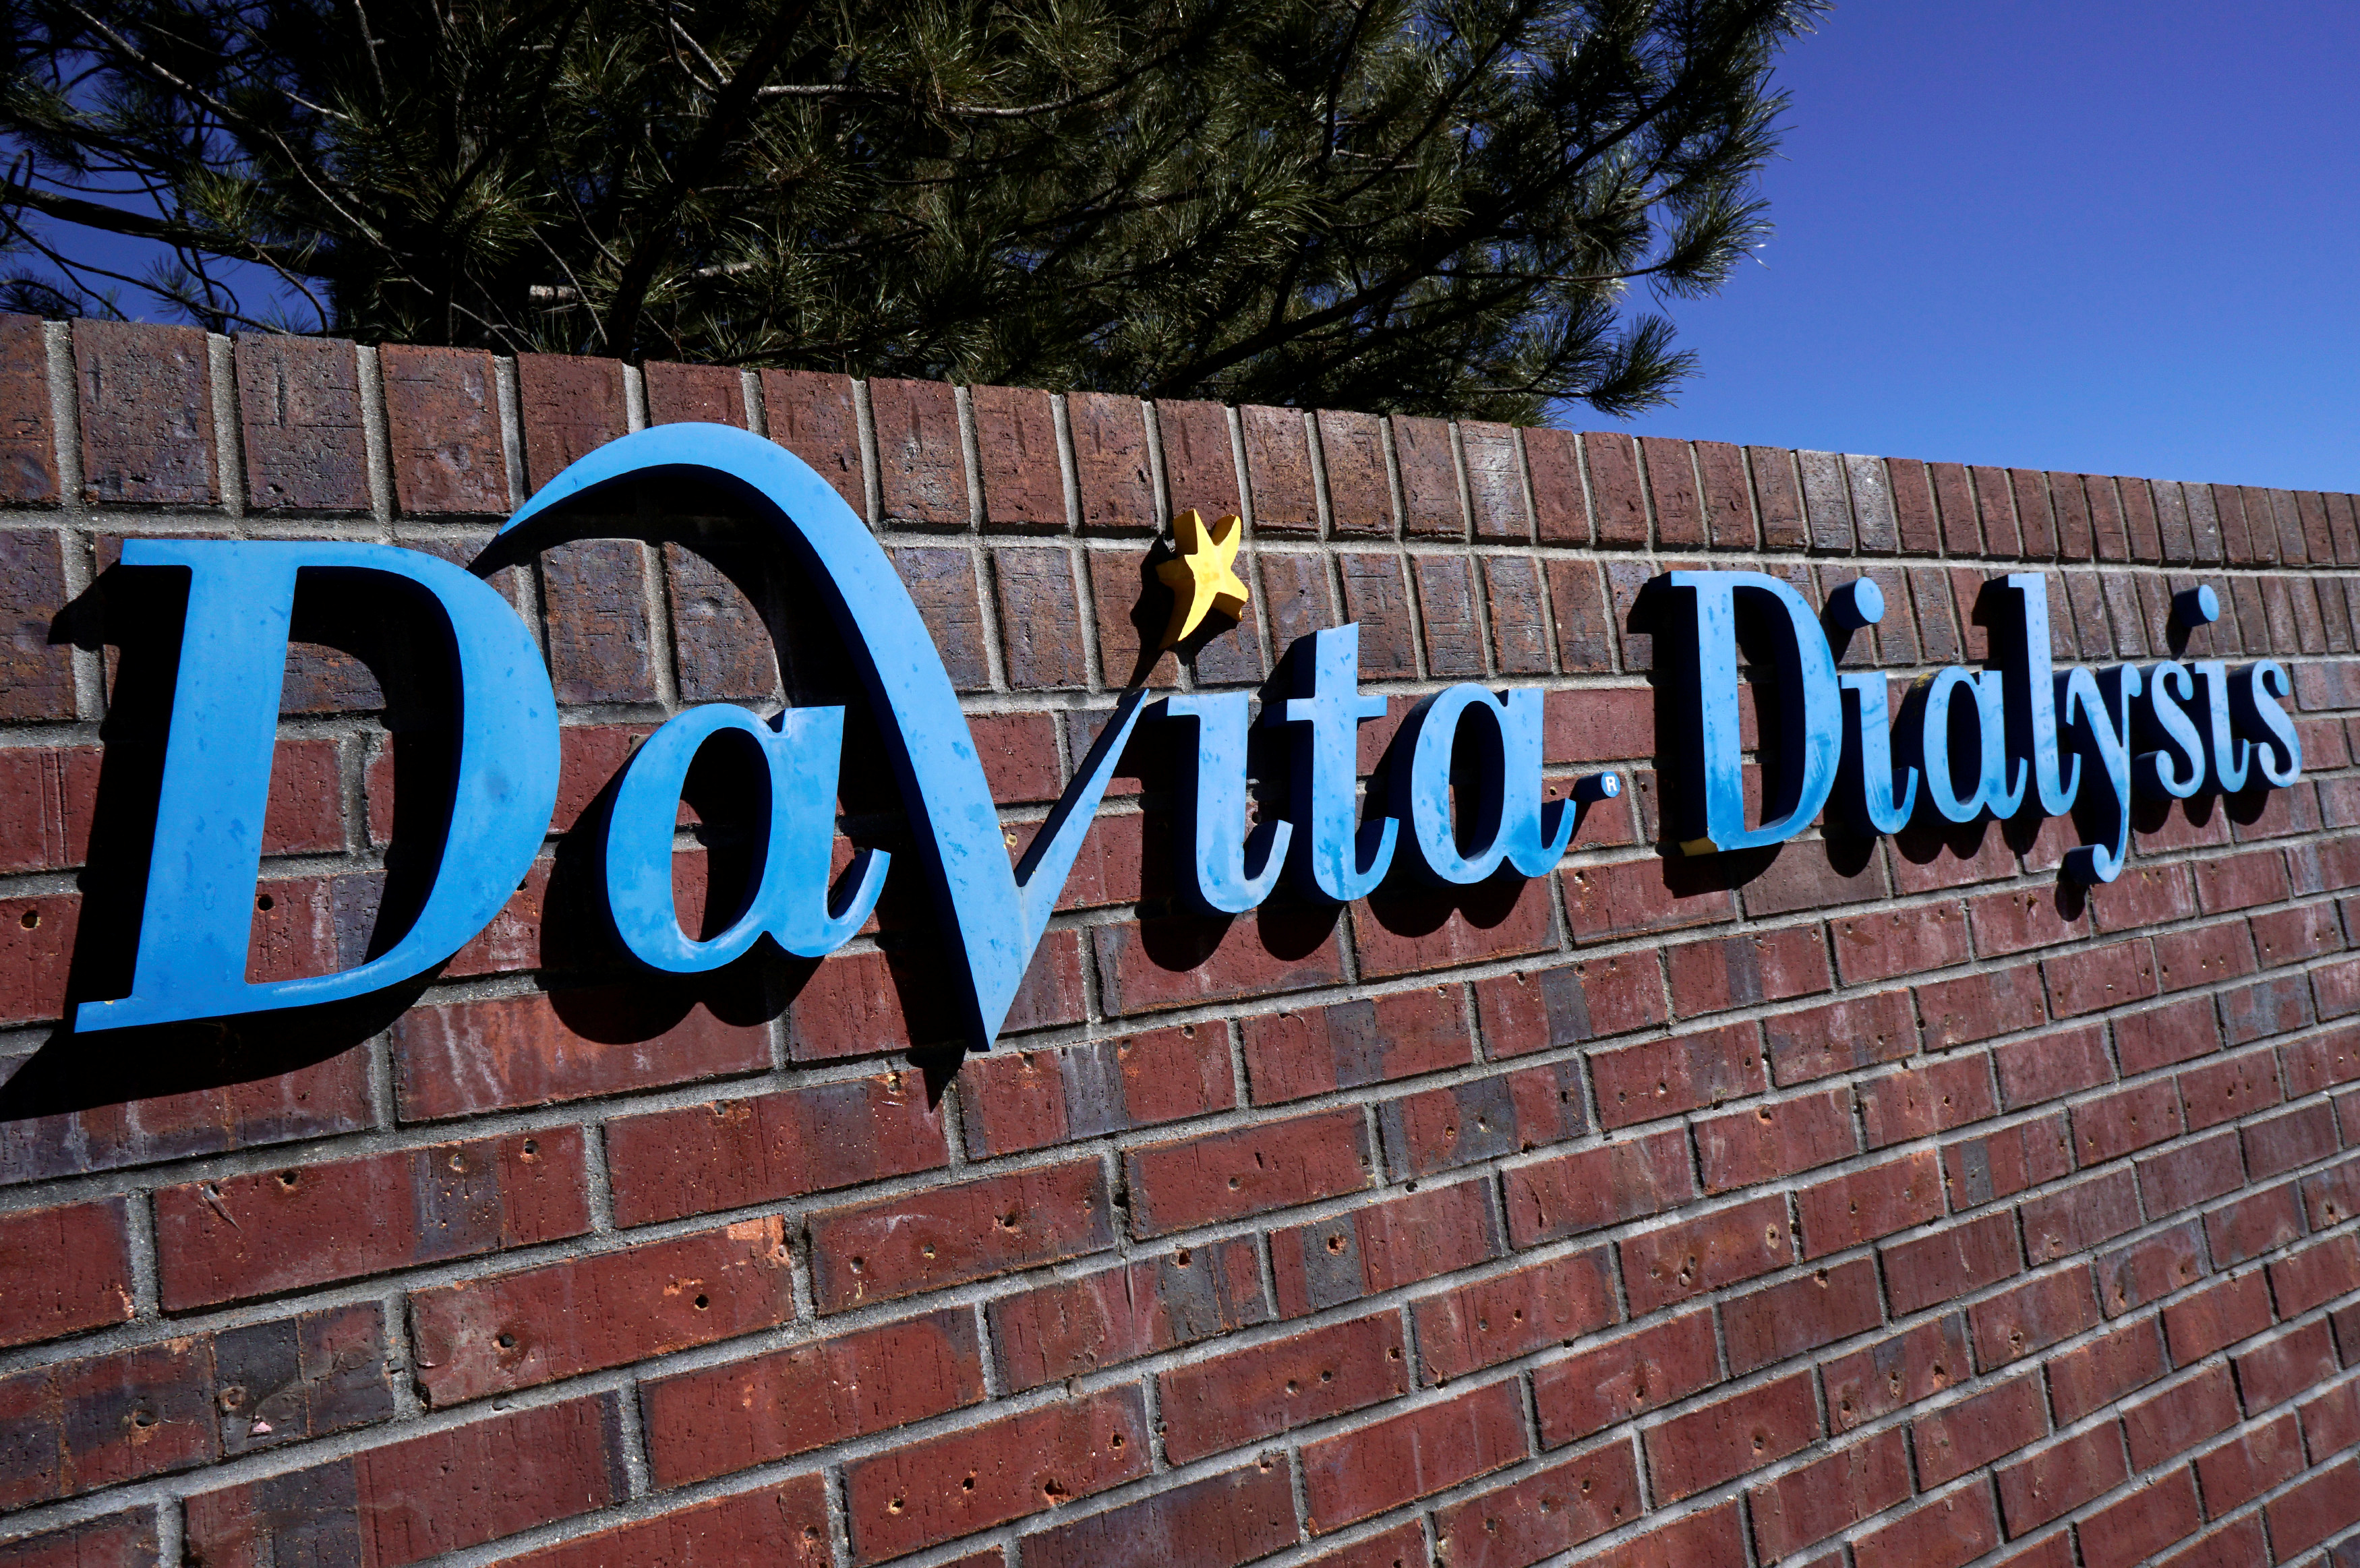 The outdoor sign seen at the DaVita Dialysis clinic in Denver February 16, 2017. REUTERS/Rick Wilking